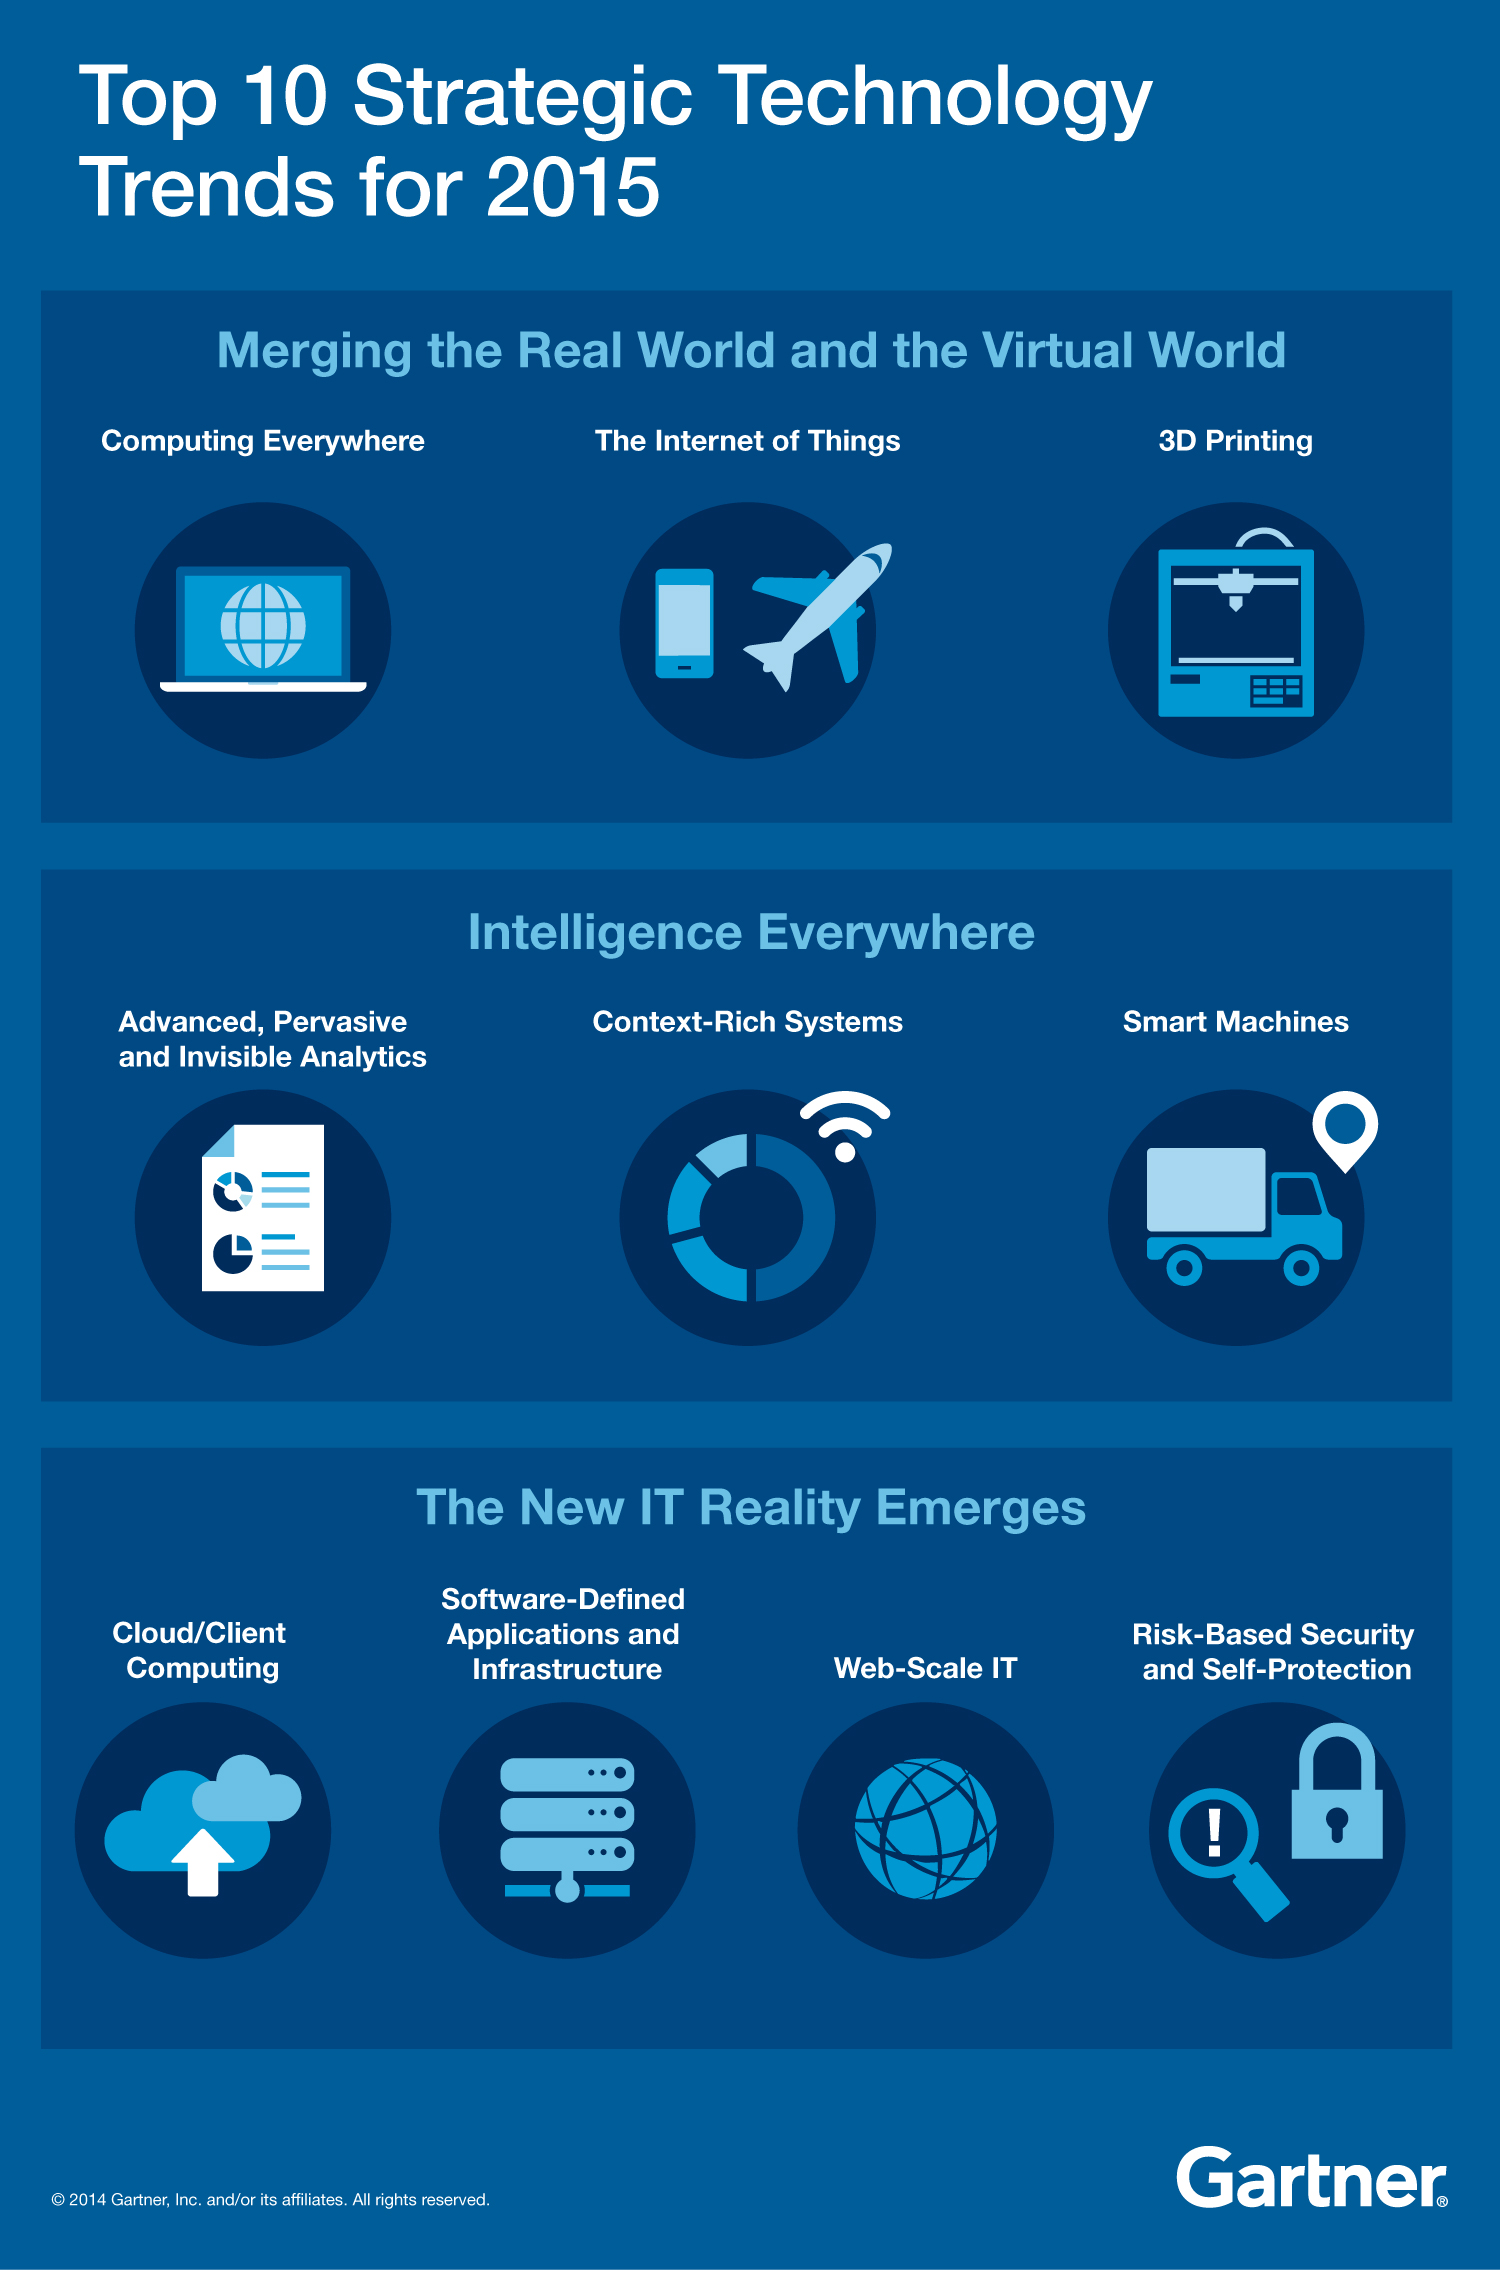 Top10TechTrends_infographic_final